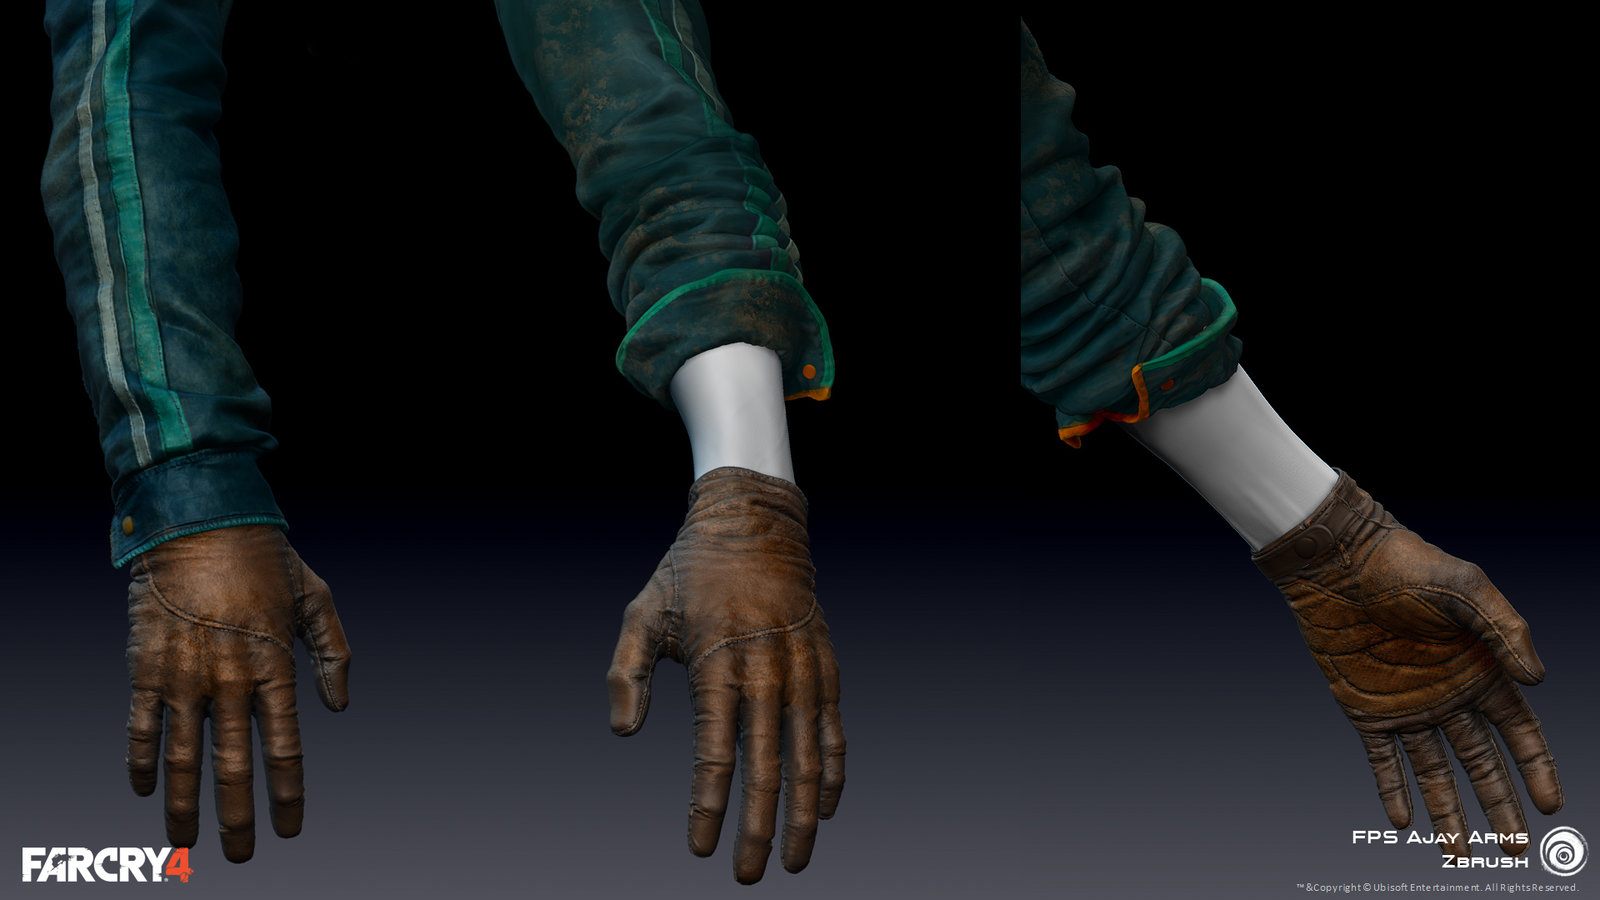 Zbrush Polypaint/texture| FPS Hands